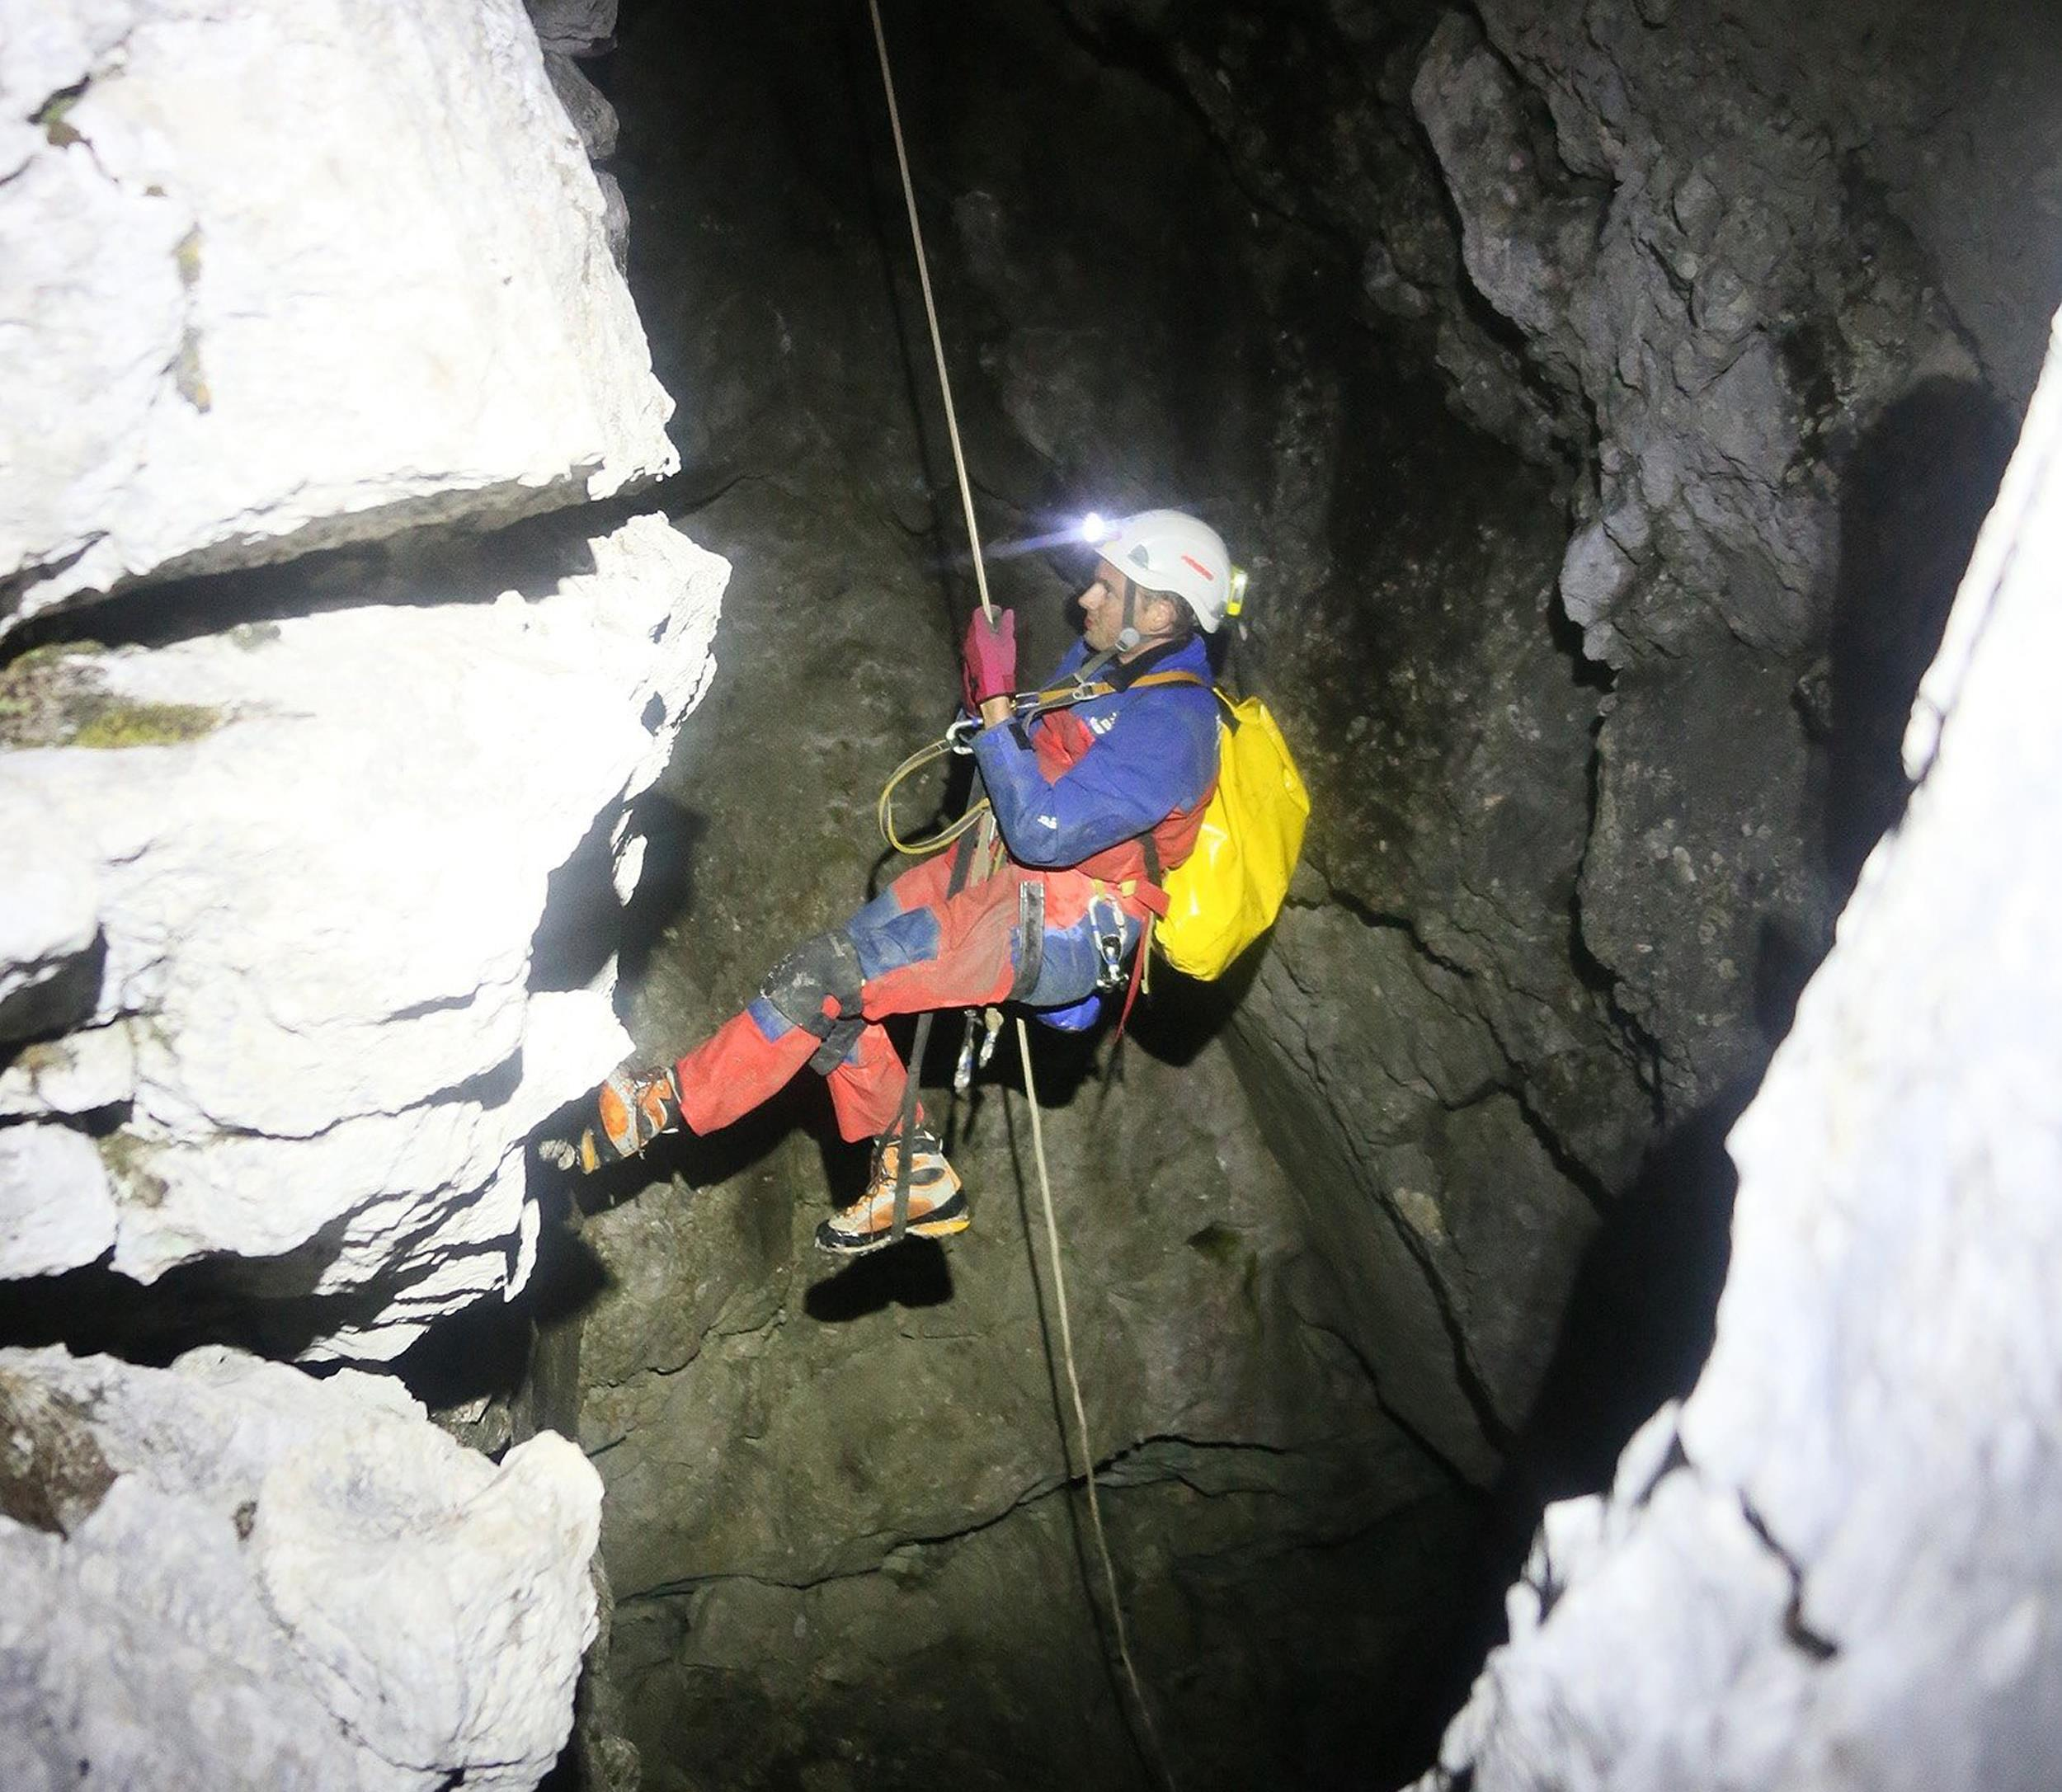 Image: A rescuer enters a cave near Berchtesgaden, Germany